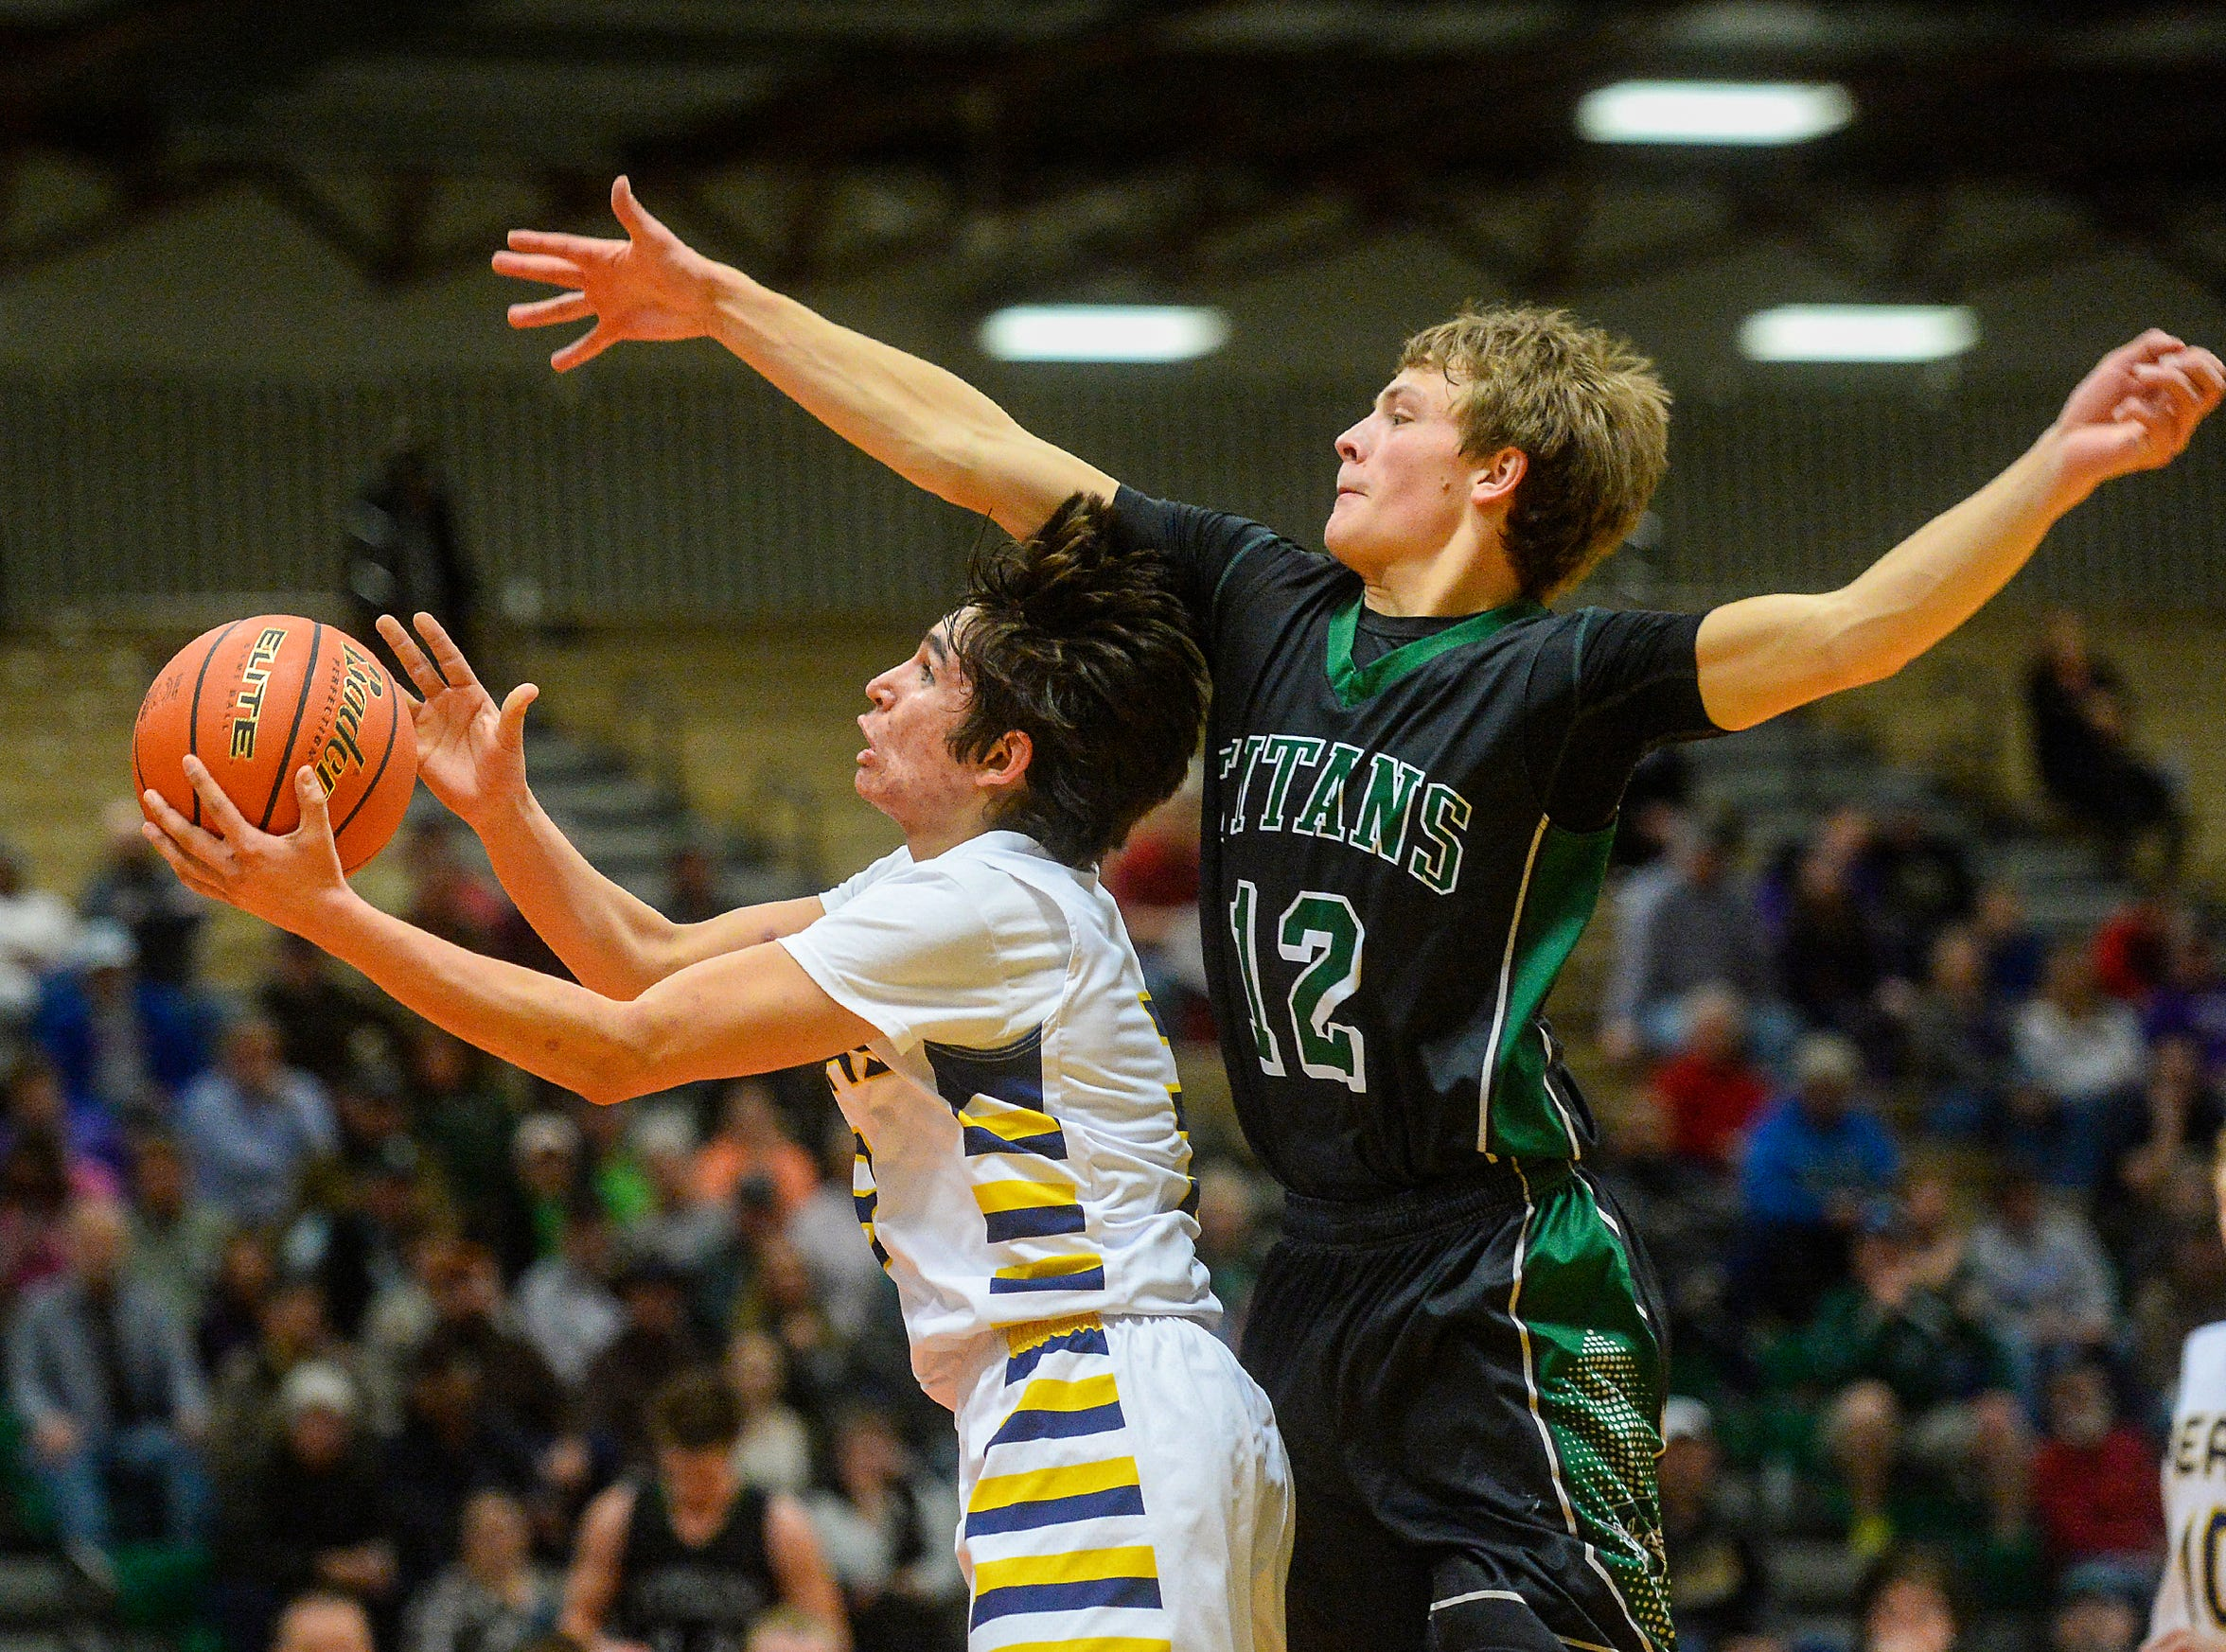 Box Elder's Brandon The Boy goes in for a layup as Tri-City's Chance McAllister defends during the Northern C Divisional Tournament in the Four Seasons Arena, Wednesday.